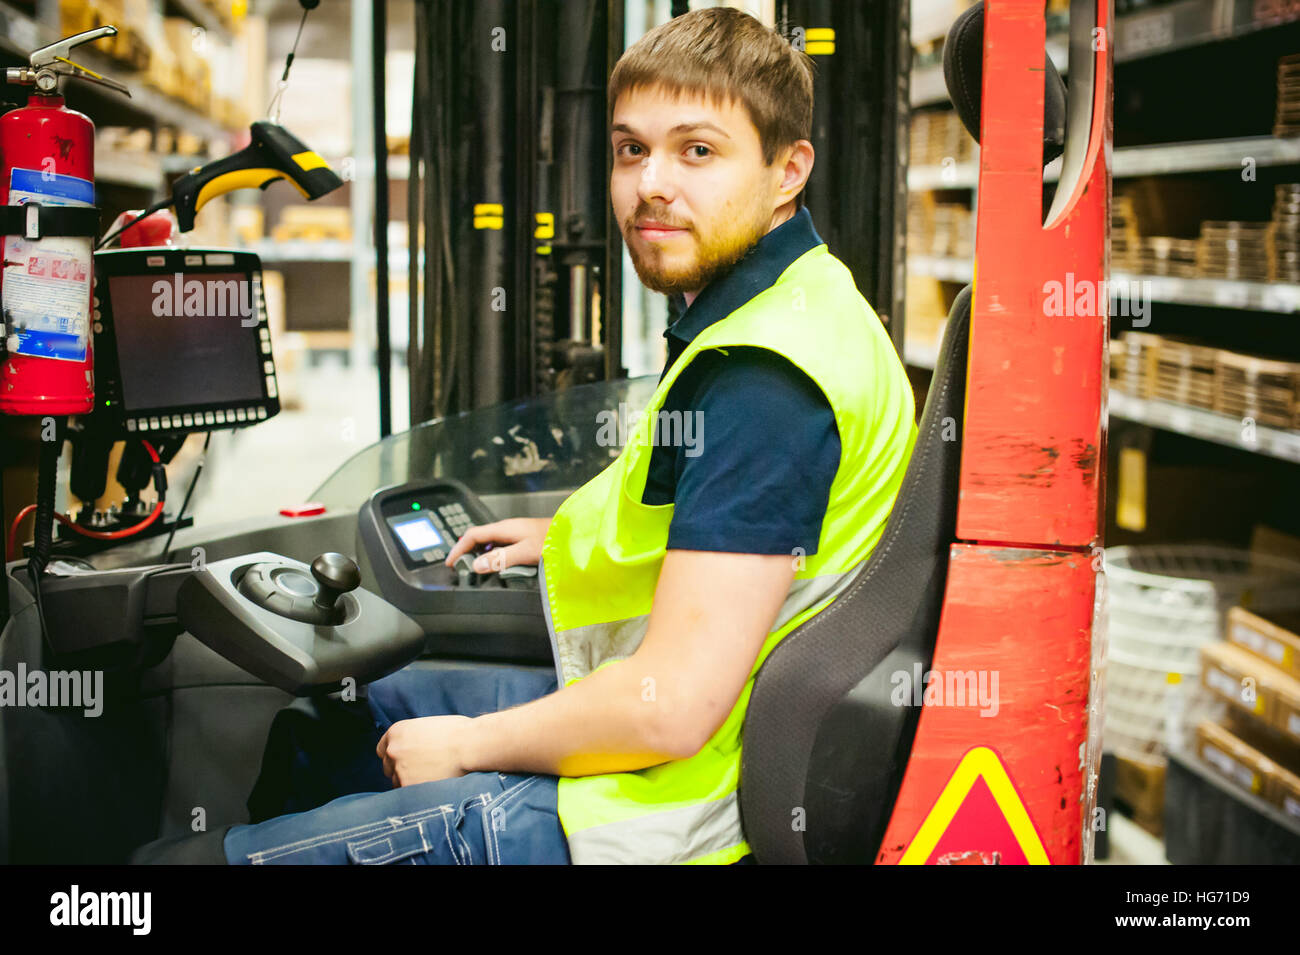 man driver Reachtruck busy working logistics warehouse store - Stock Image